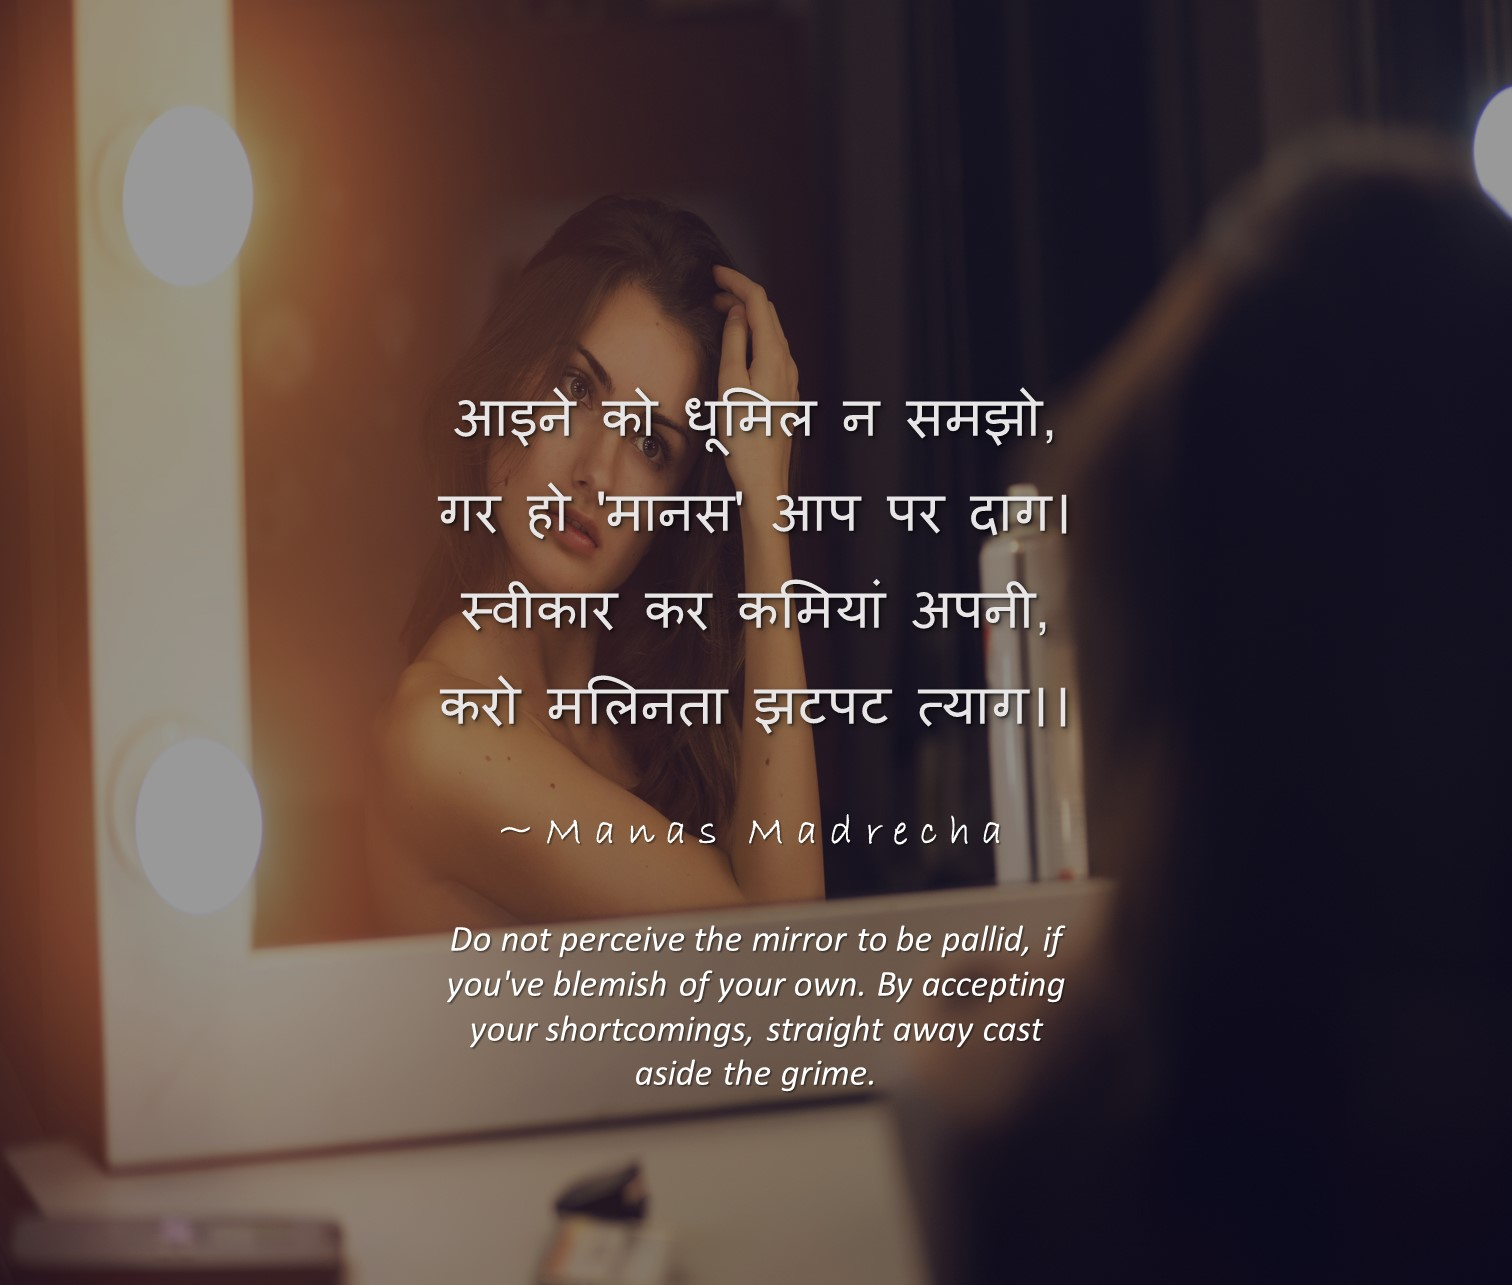 girl looking in mirror, girl looking at reflection, girl mood wallpaper, girl doing make up, woman doing make up, woman looking at her reflection, girl and mirror, beautiful girl seeing herself, sad girl looking in mirror, Manas Madrecha, Manas Madrecha blog, simplifying universe, hindi poem on self, hindi quotes, hindi shayari, inspirational poem, inspirational quotes, motivational quotes, first talk about yourself, pehle khud ki baat karo,